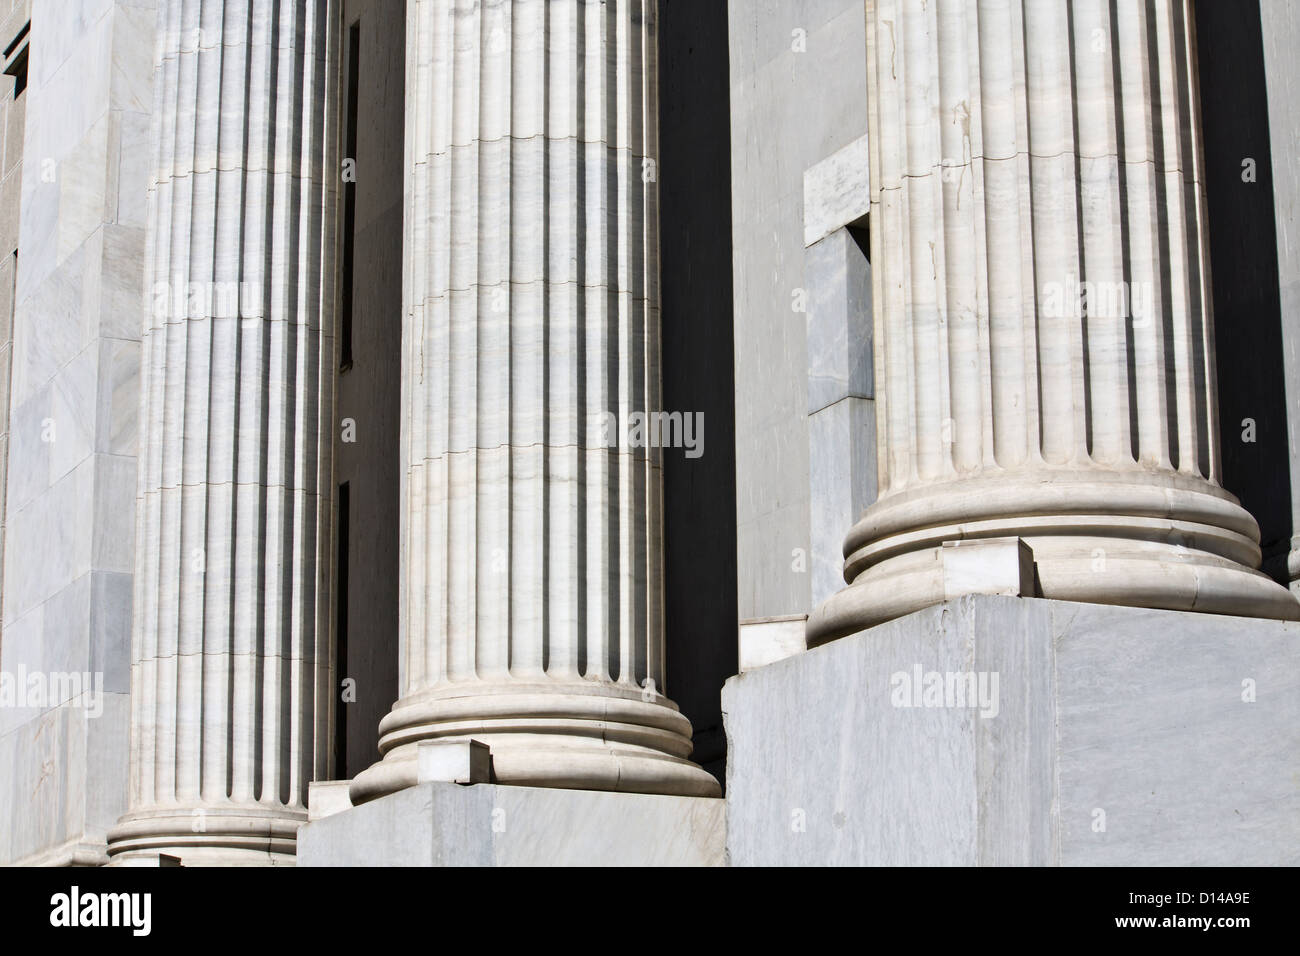 Detail image of Greek pillars - Stock Image